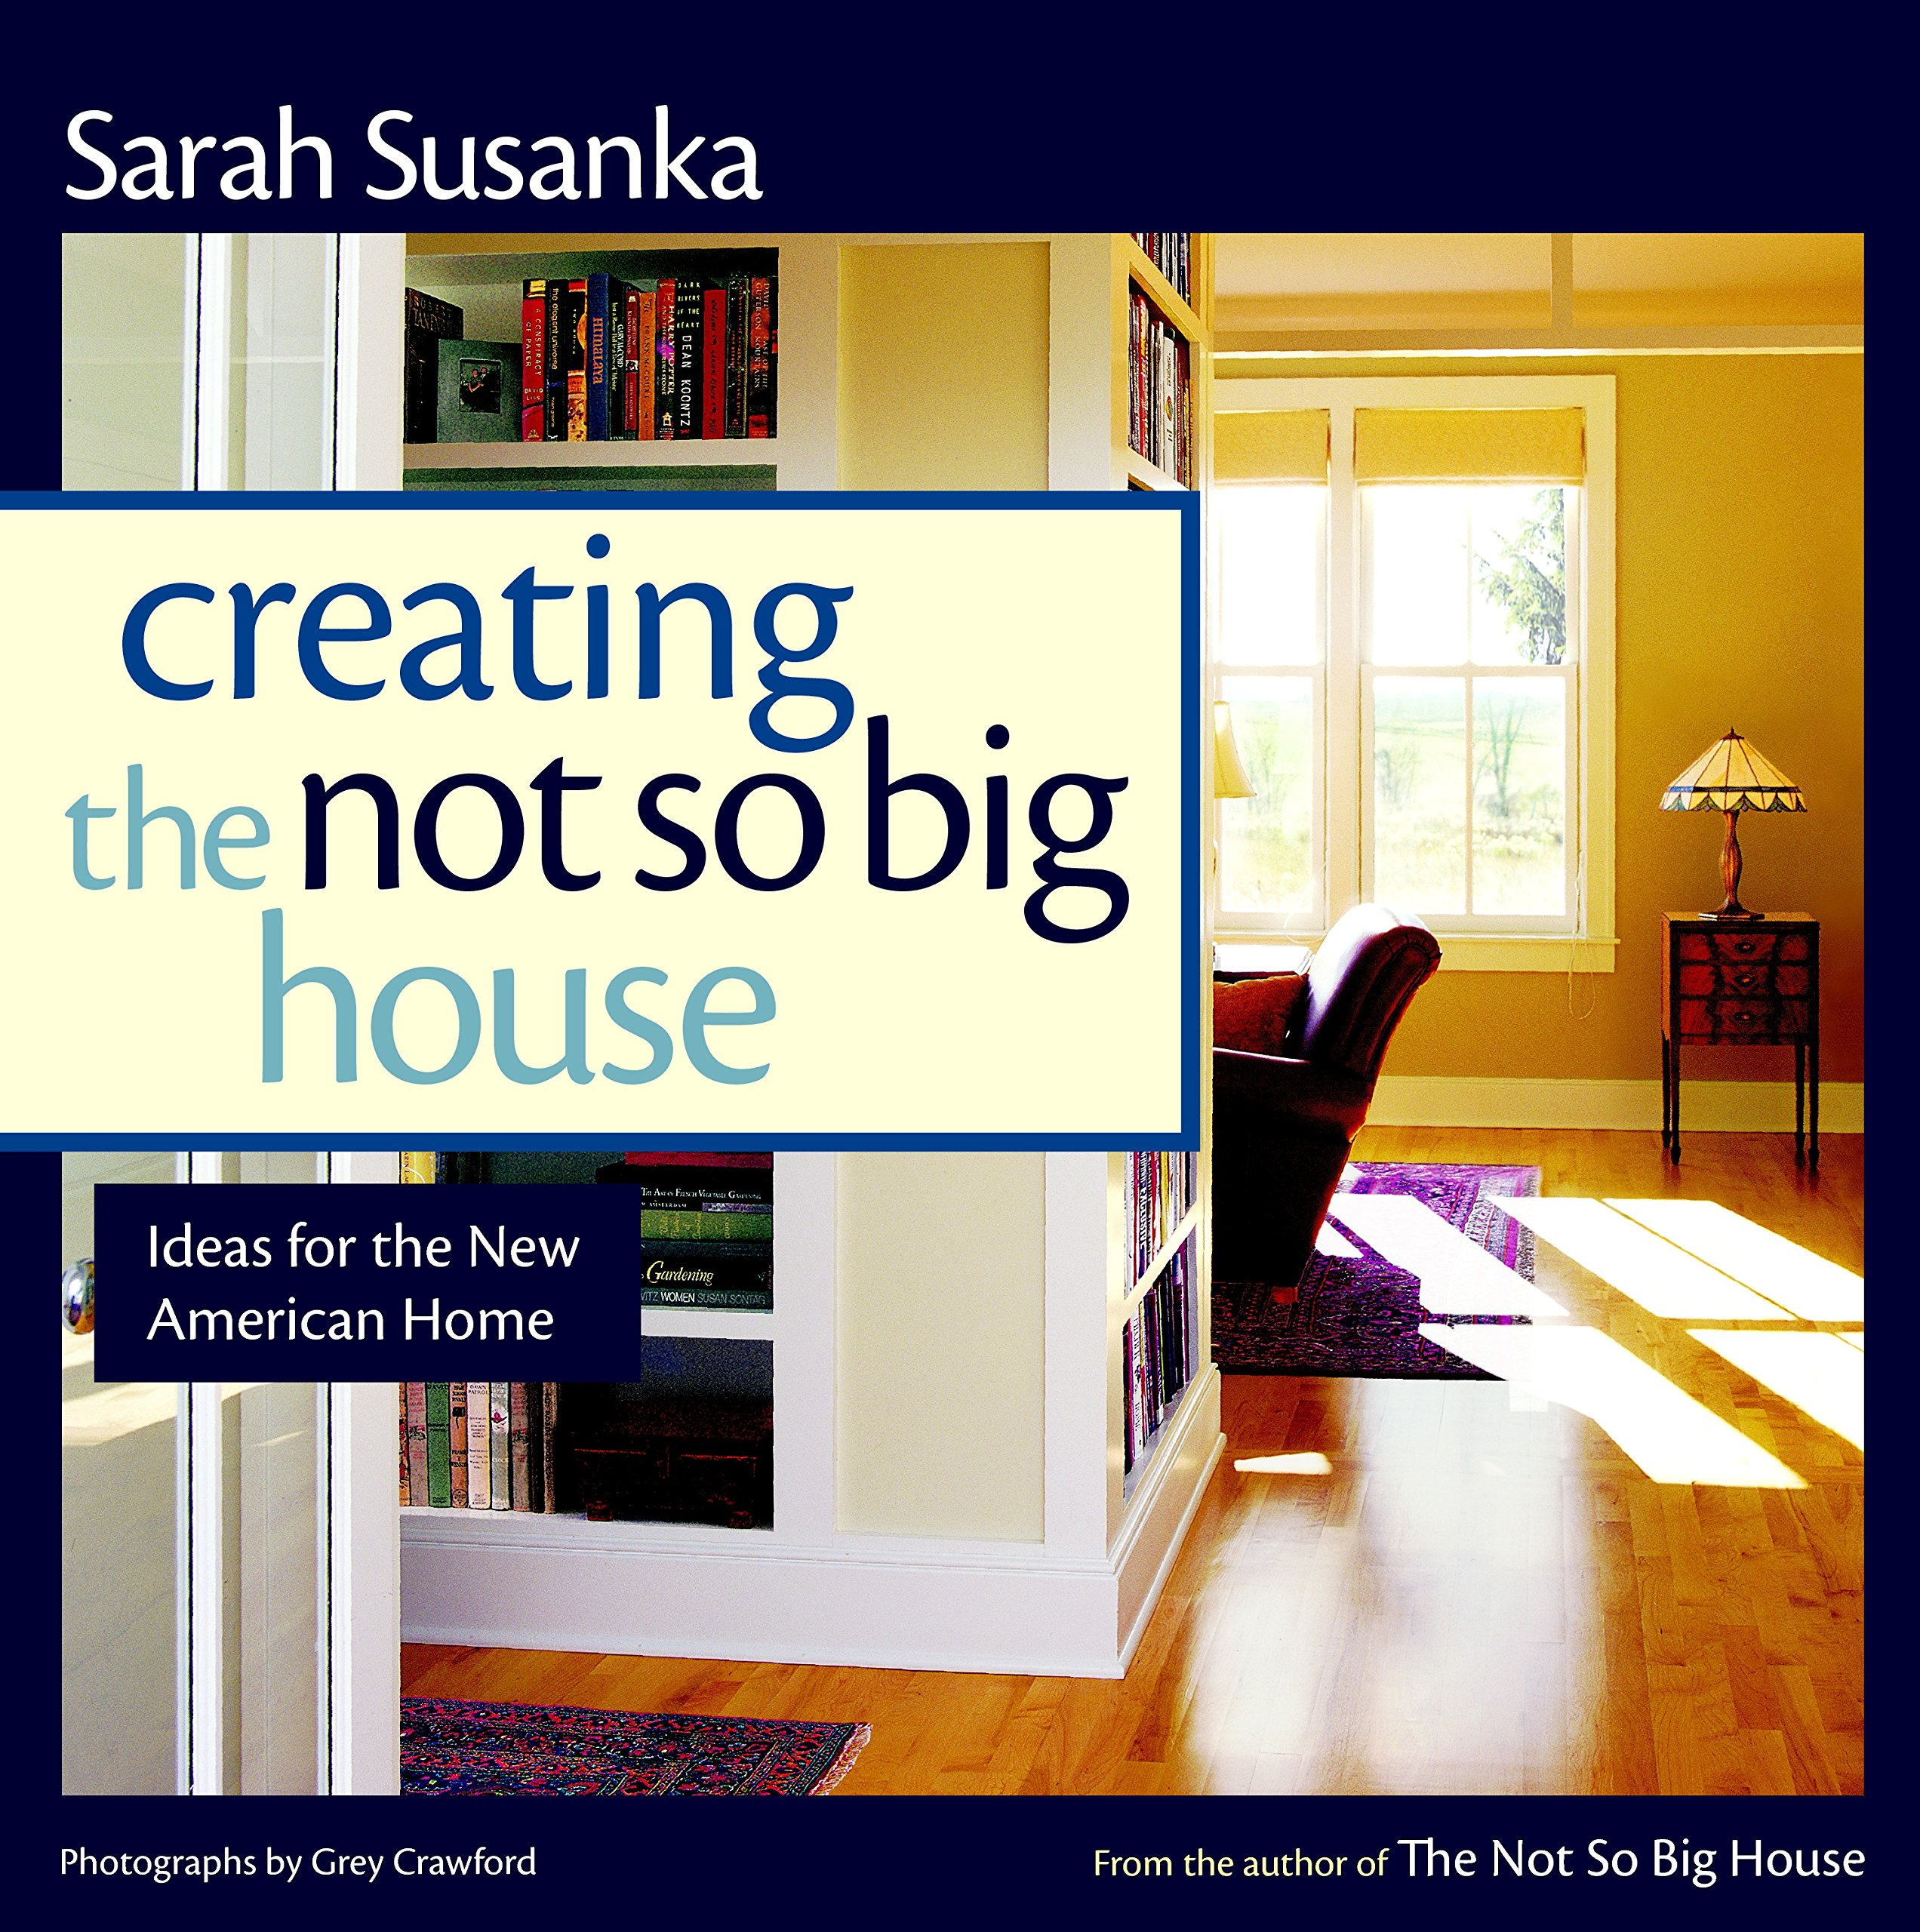 Creating The Not So Big House: Insights And Ideas For The New American Home  (Susanka): Sarah Susanka, Grey Crawford: 9781561586059: Amazon.com: Books